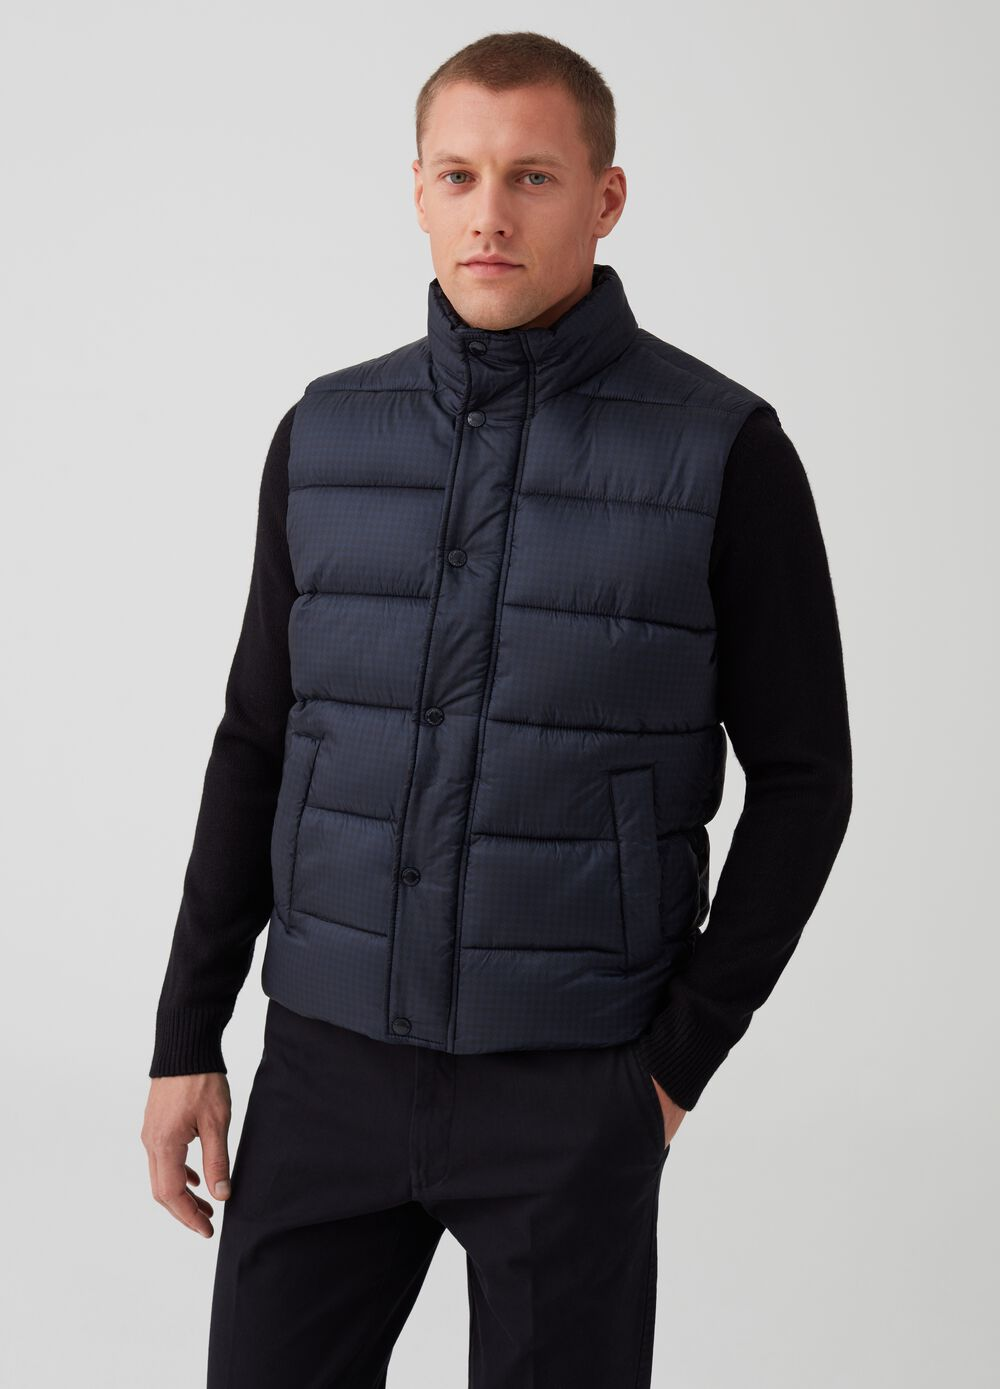 Rumford quilted and printed gilet